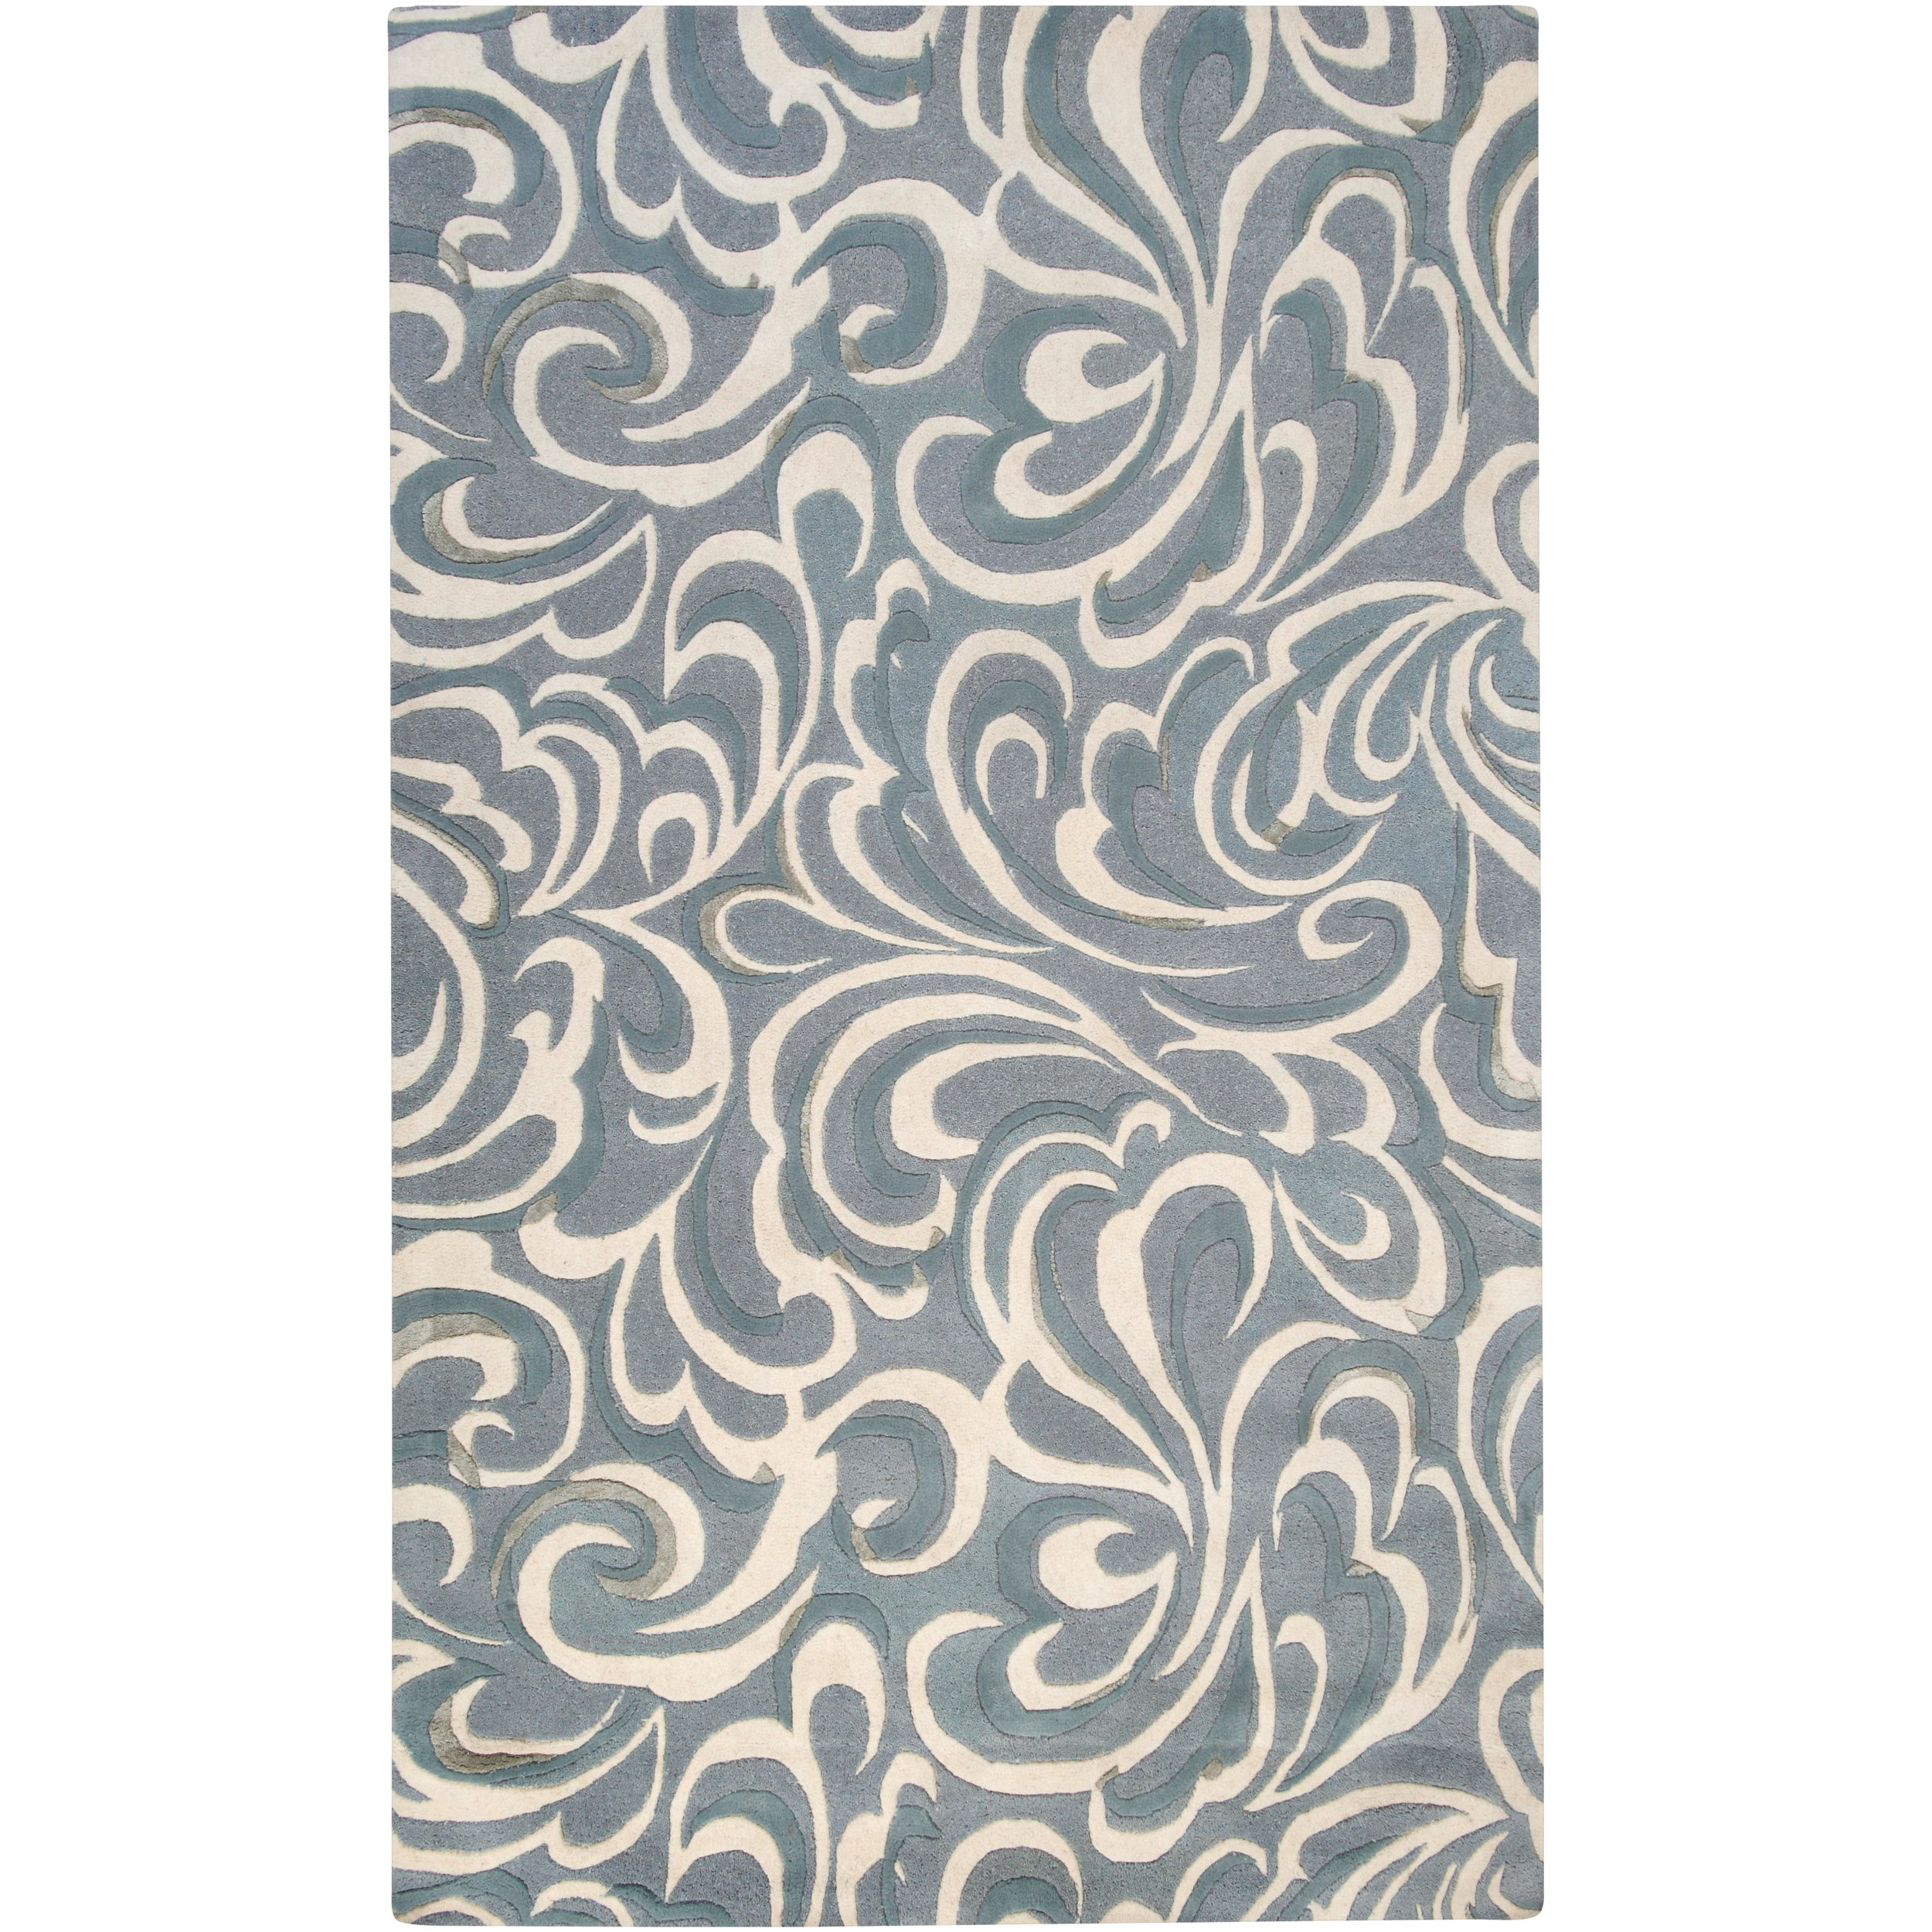 Candice Olson Hand-tufted Contemporary Blue/ Abstract Samnaun New Zealand Wool Abstract Rug (3'3 x 5'3)